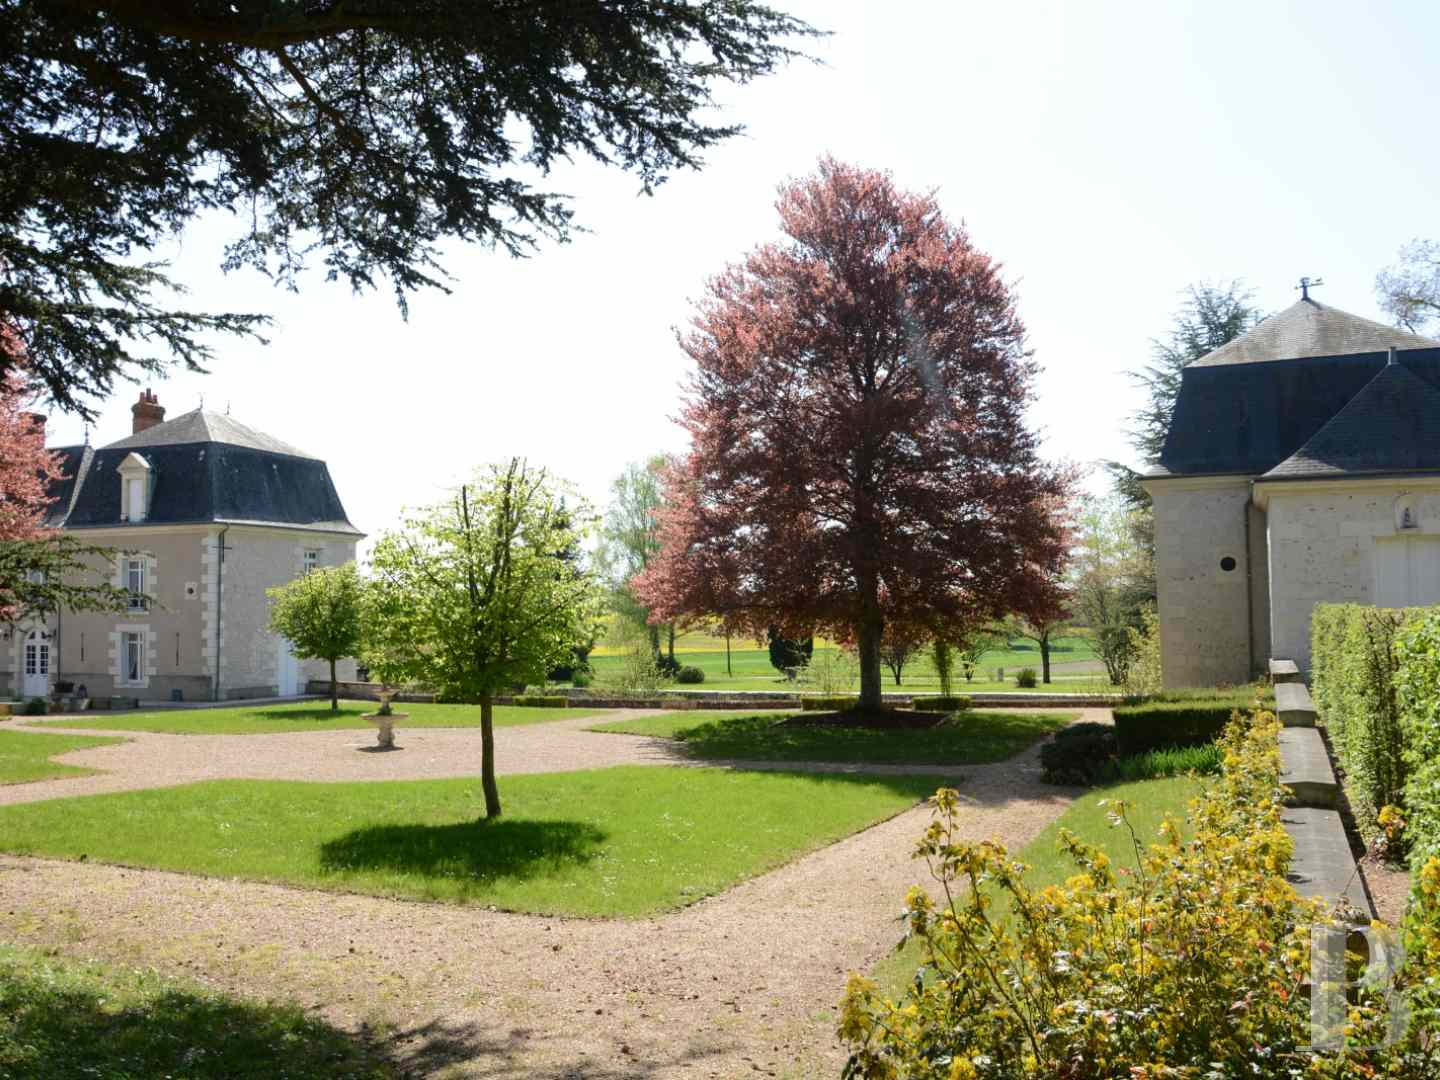 property for sale France center val de loire hunting grounds - 4 zoom